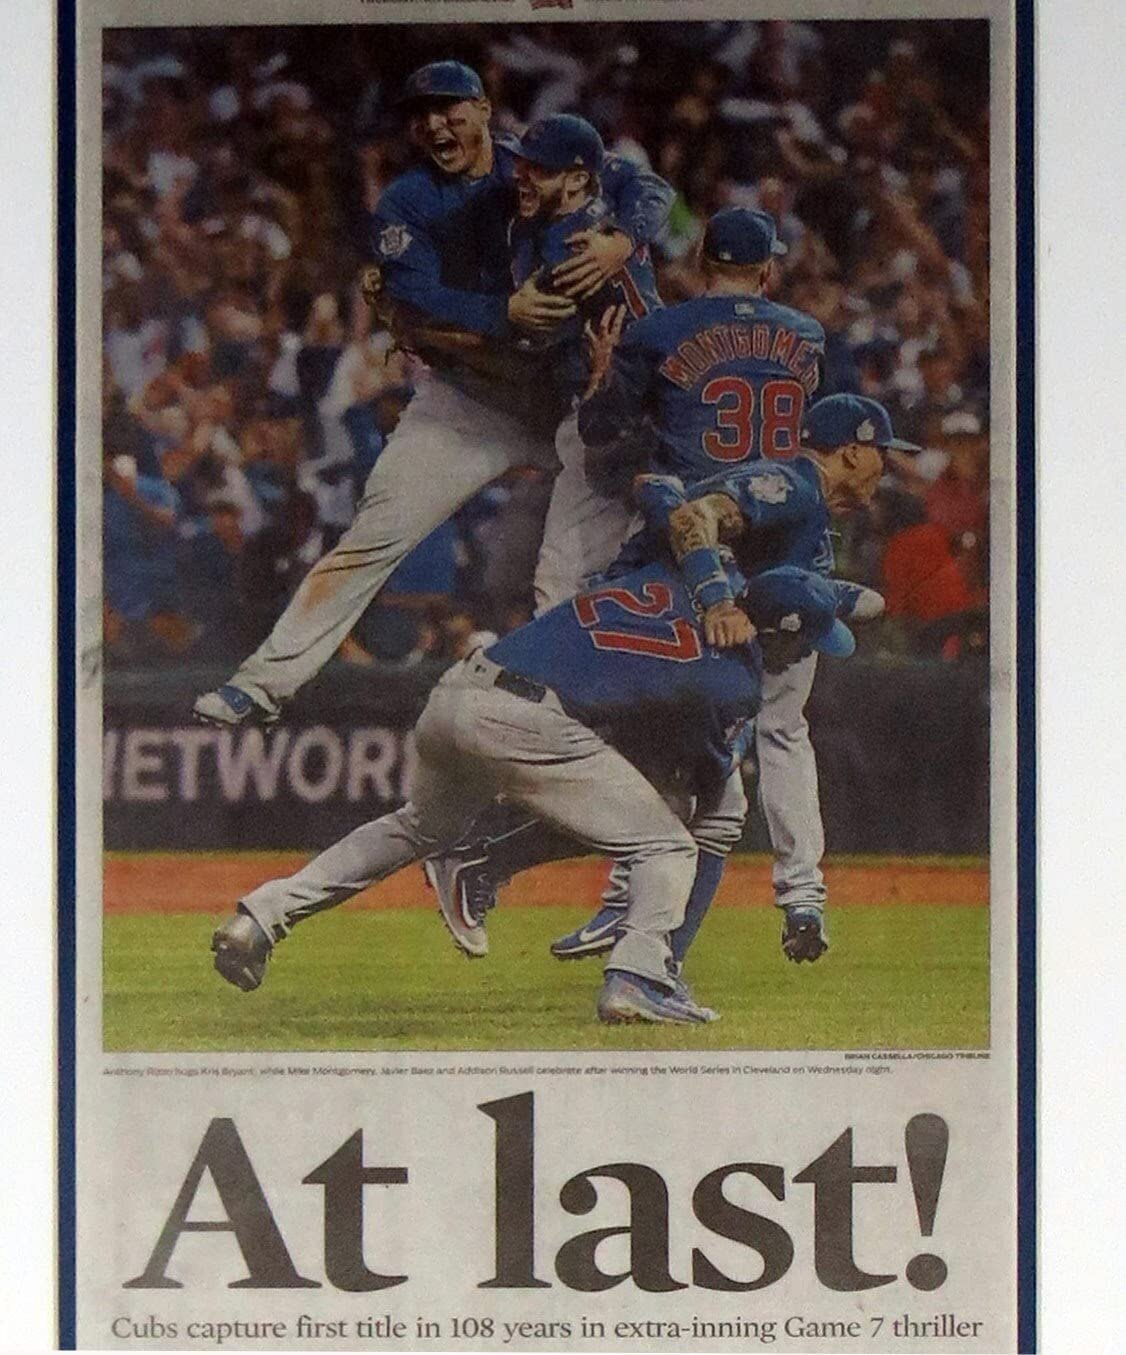 bleachers sports music framing chicago cubs 2016 world series champions chicago tribune newspaper 11 3 16 professionally framed